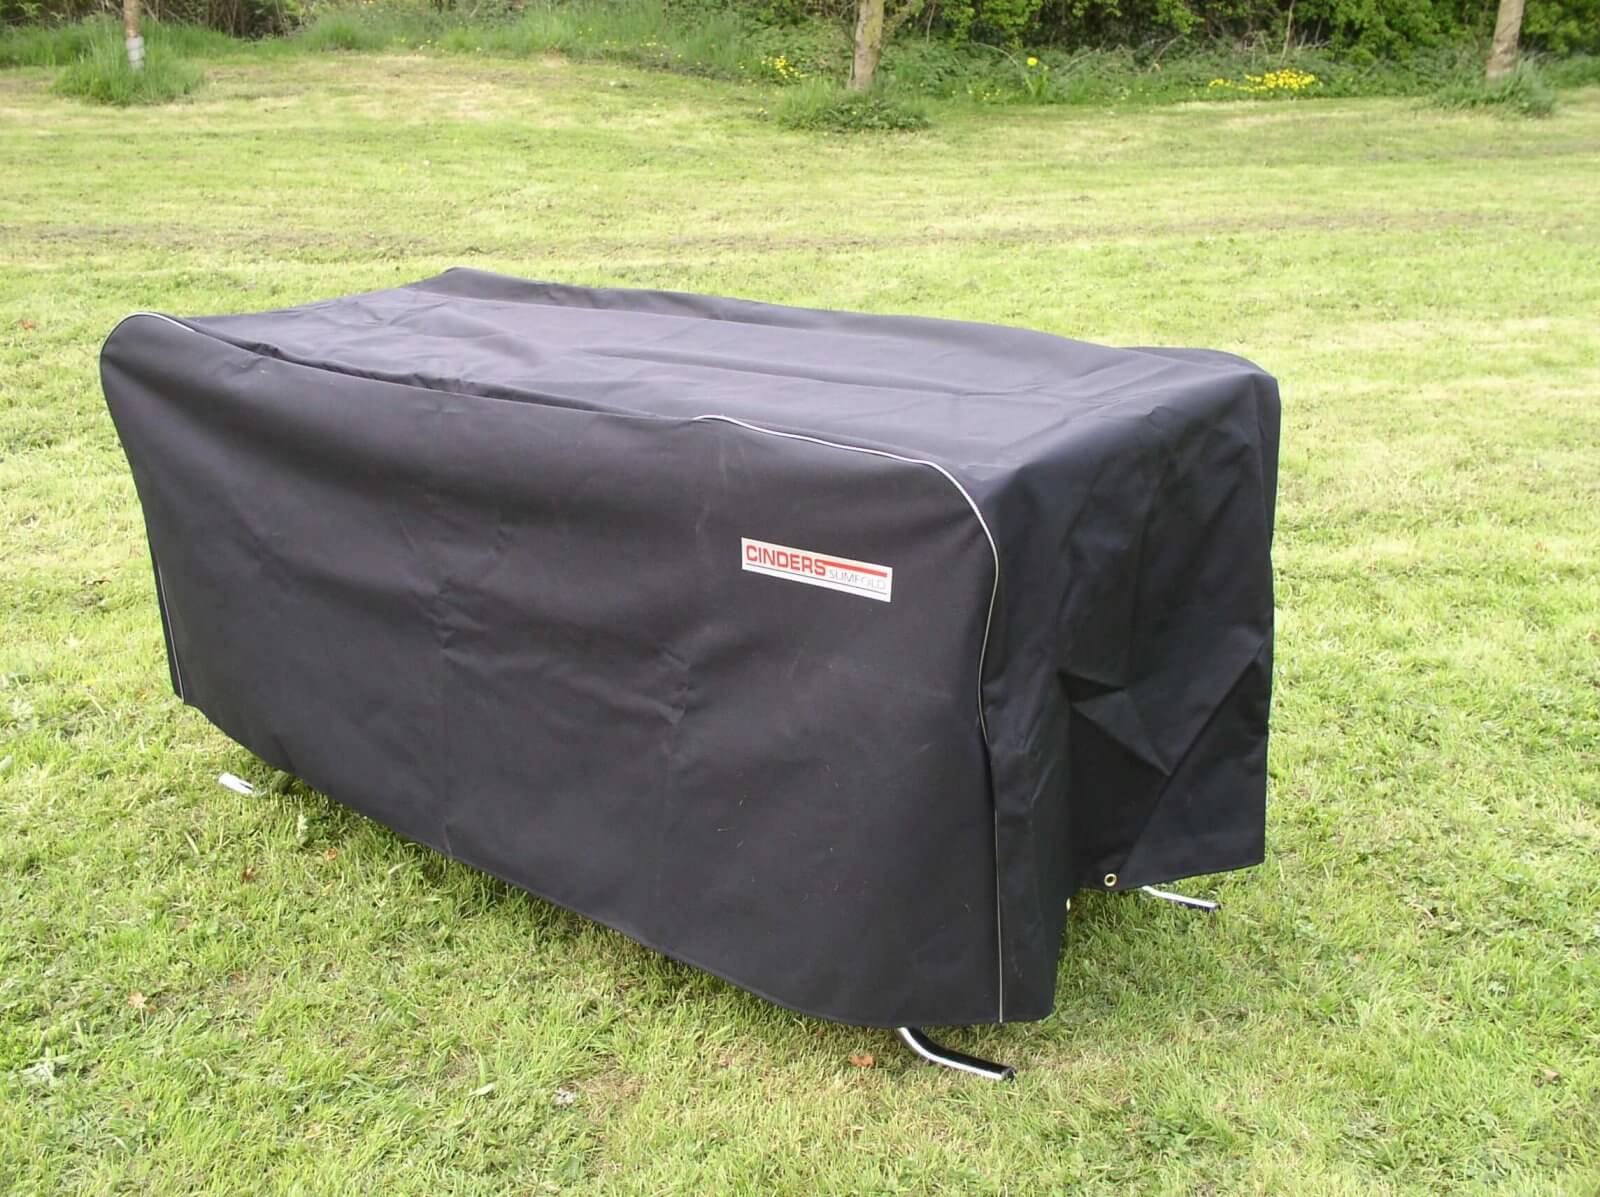 TG160 Barbecue Cover